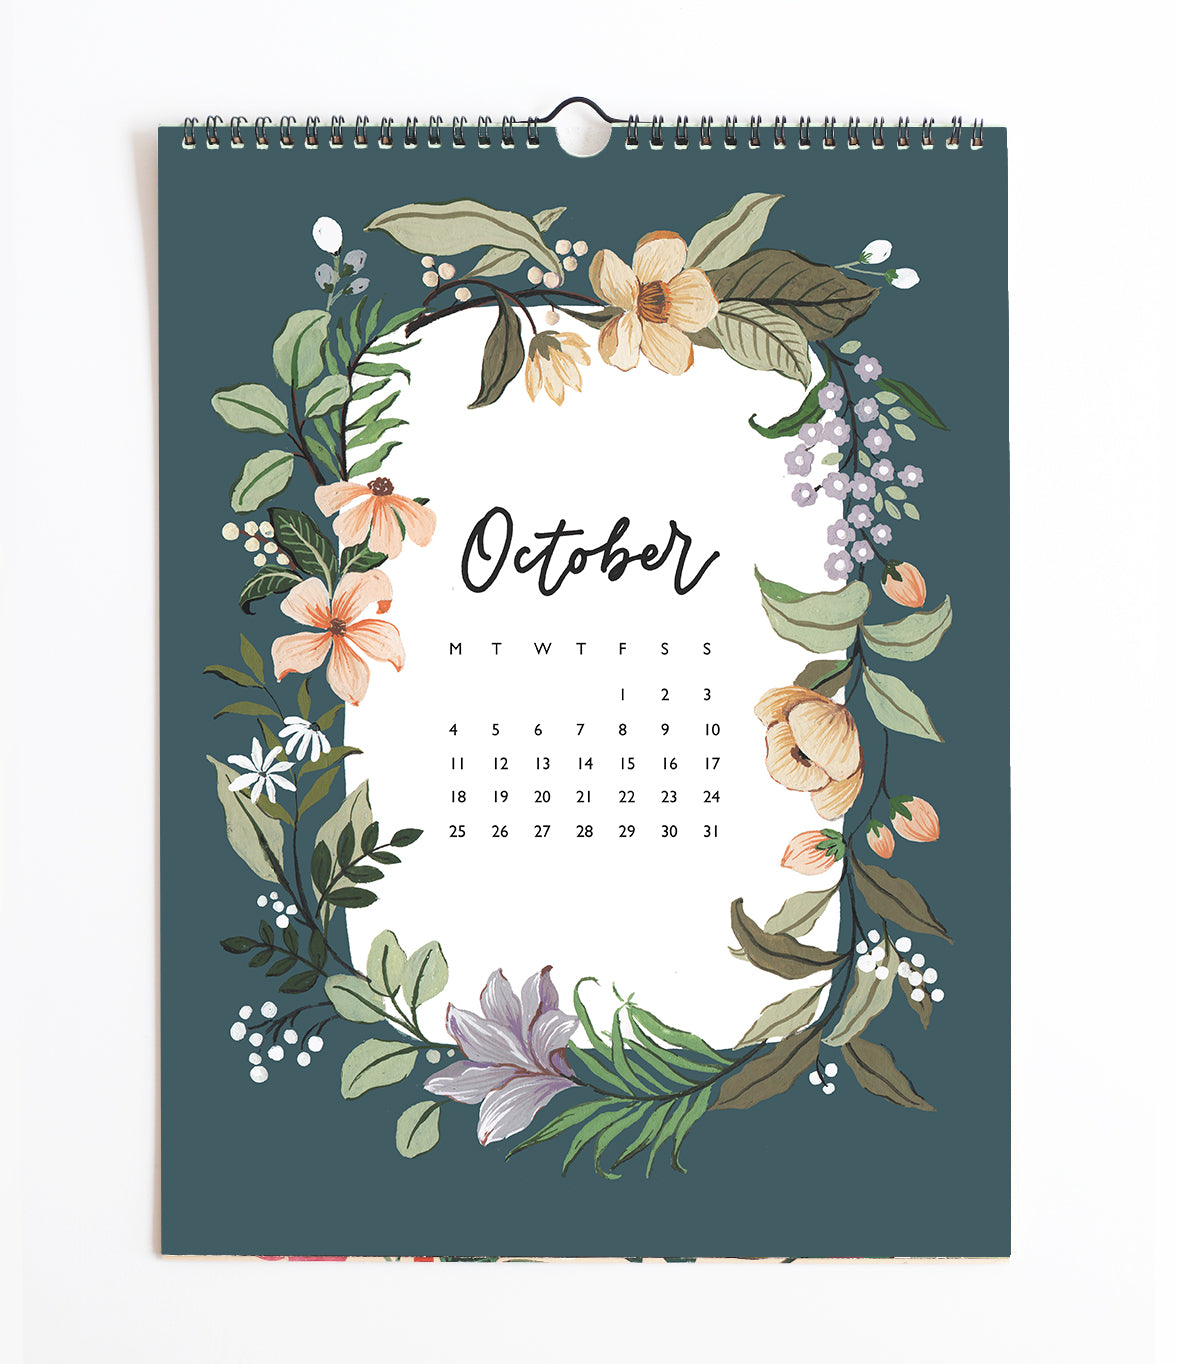 2021 Wall Calendar | Closer to Nature